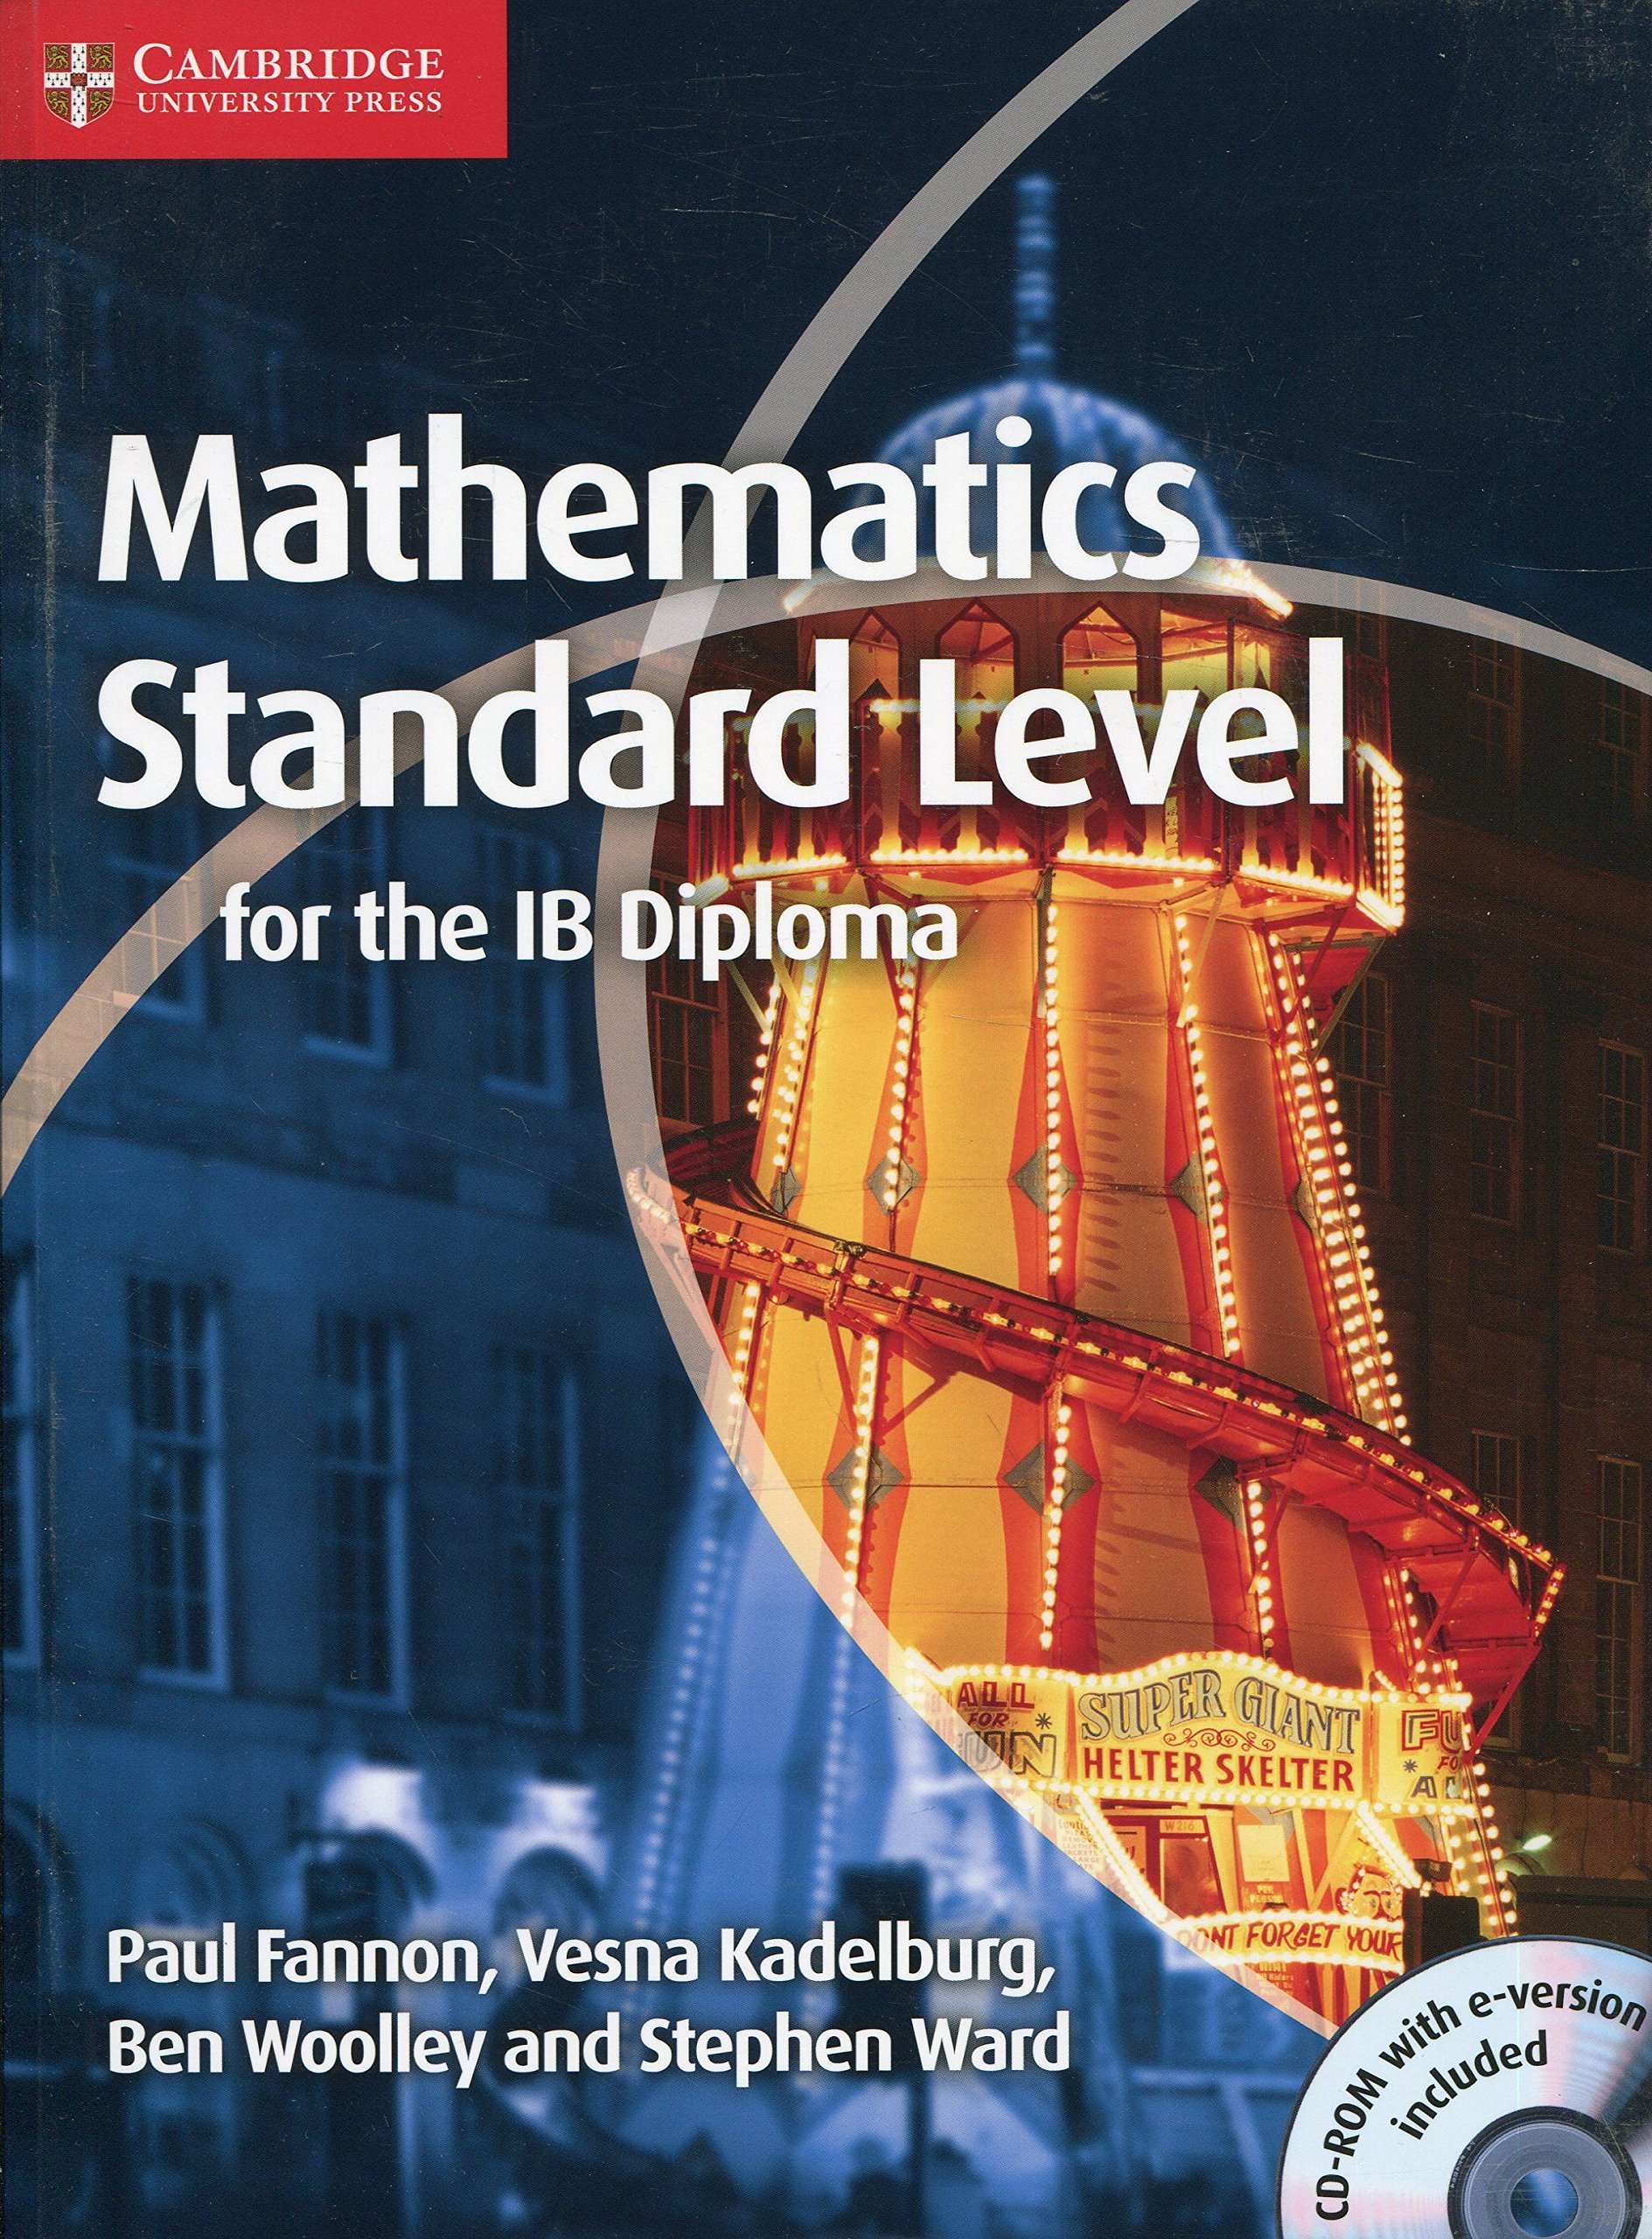 Mathematics for the IB Diploma Standard Level with CD-ROM: Paul Fannon,  Vesna Kadelburg, Ben Woolley, Stephen Ward: 9781107613065: Amazon.com: Books